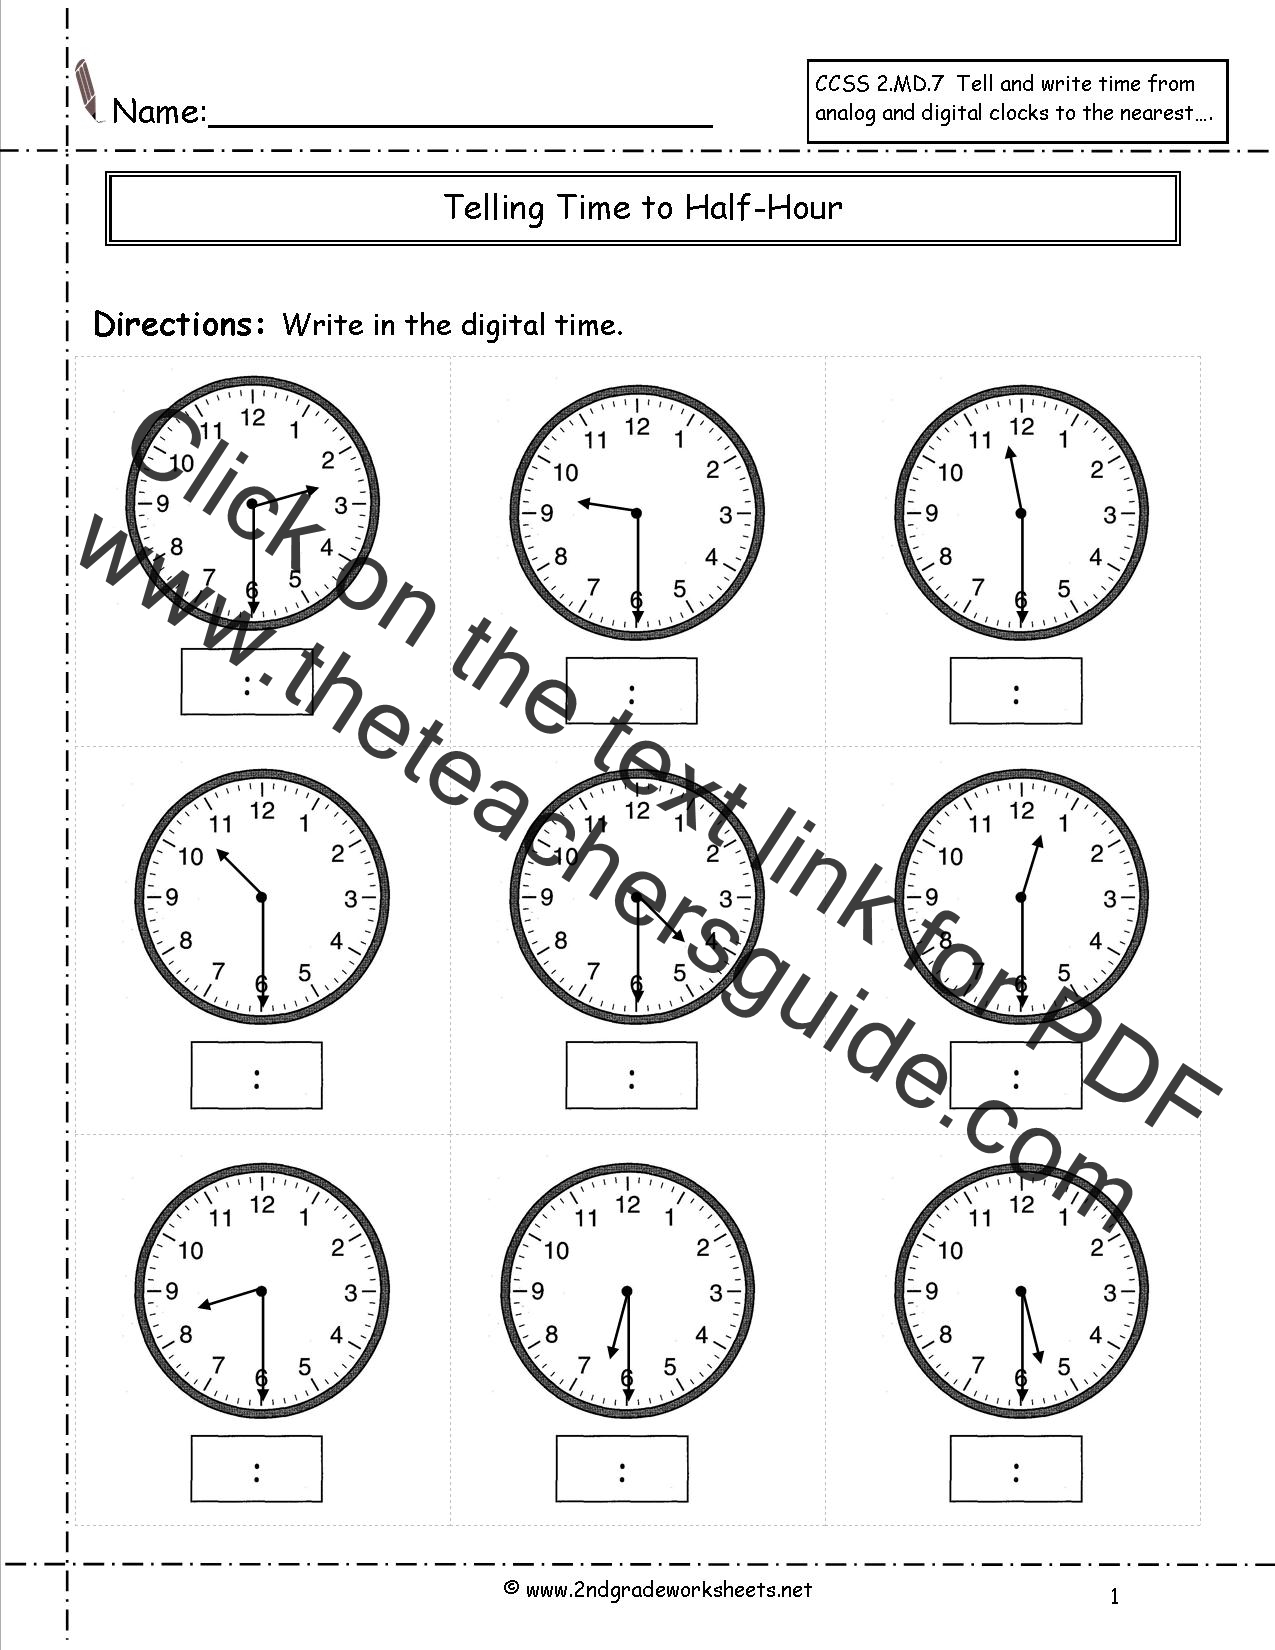 worksheet Digital Clock Worksheets ccss 2 md 7 worksheets telling time to five minutes nearest half hour worksheet